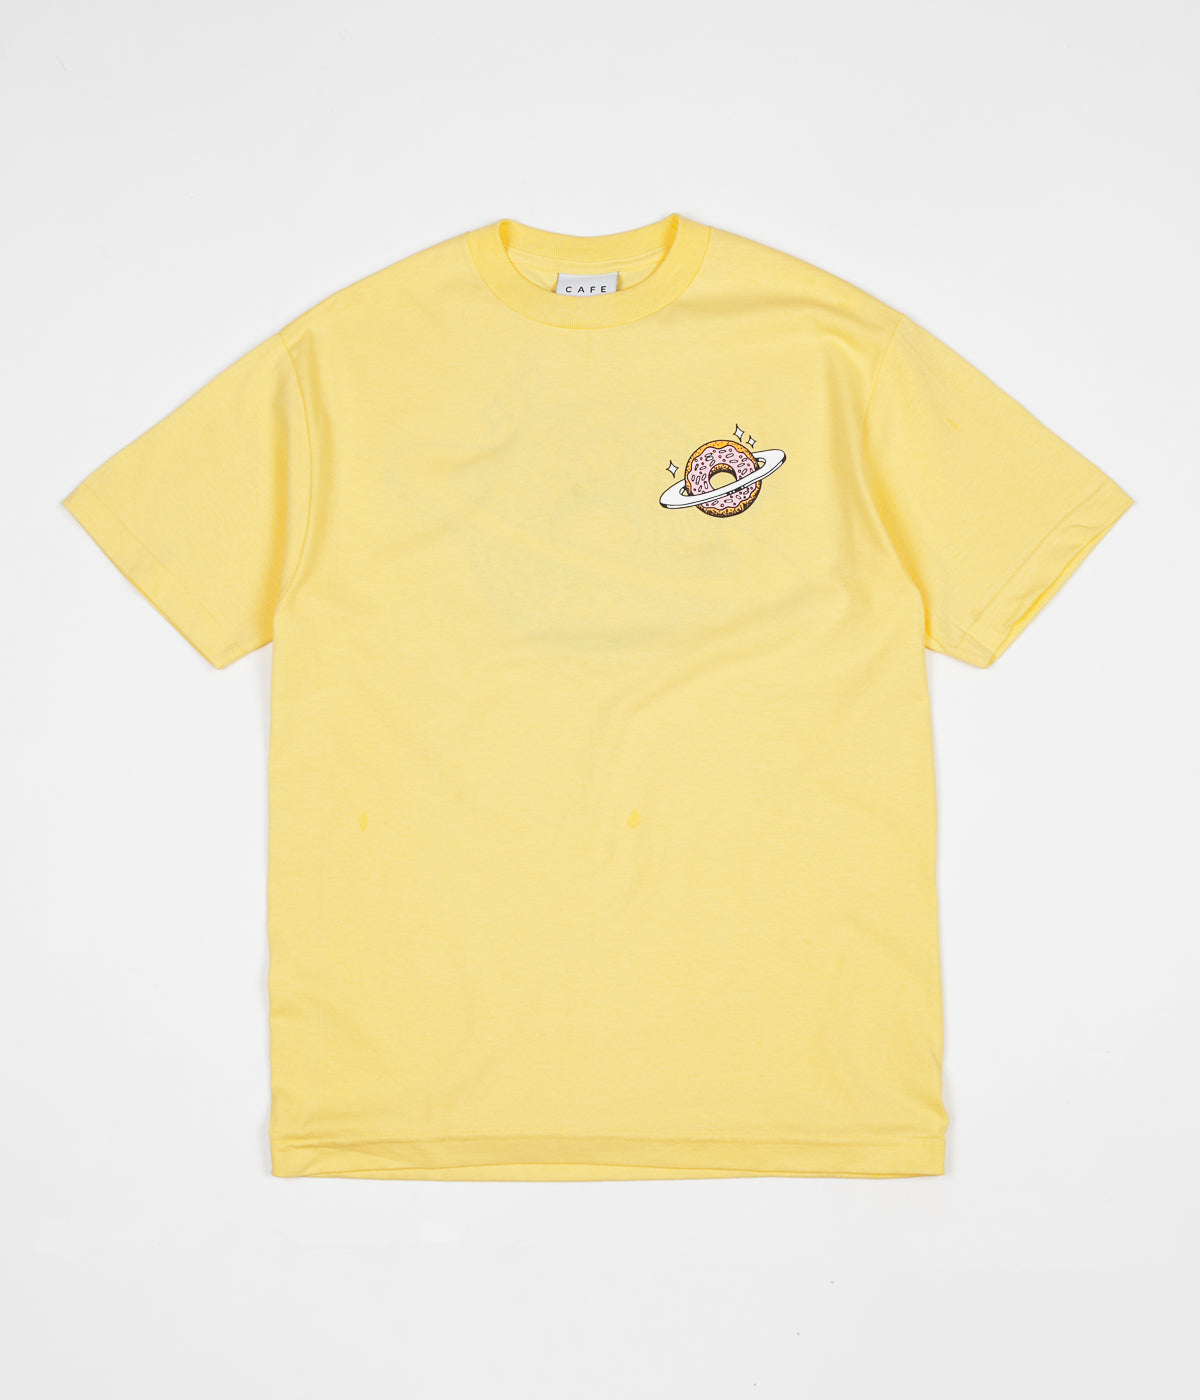 Skateboard Cafe Planet Donut T-Shirt - Banana